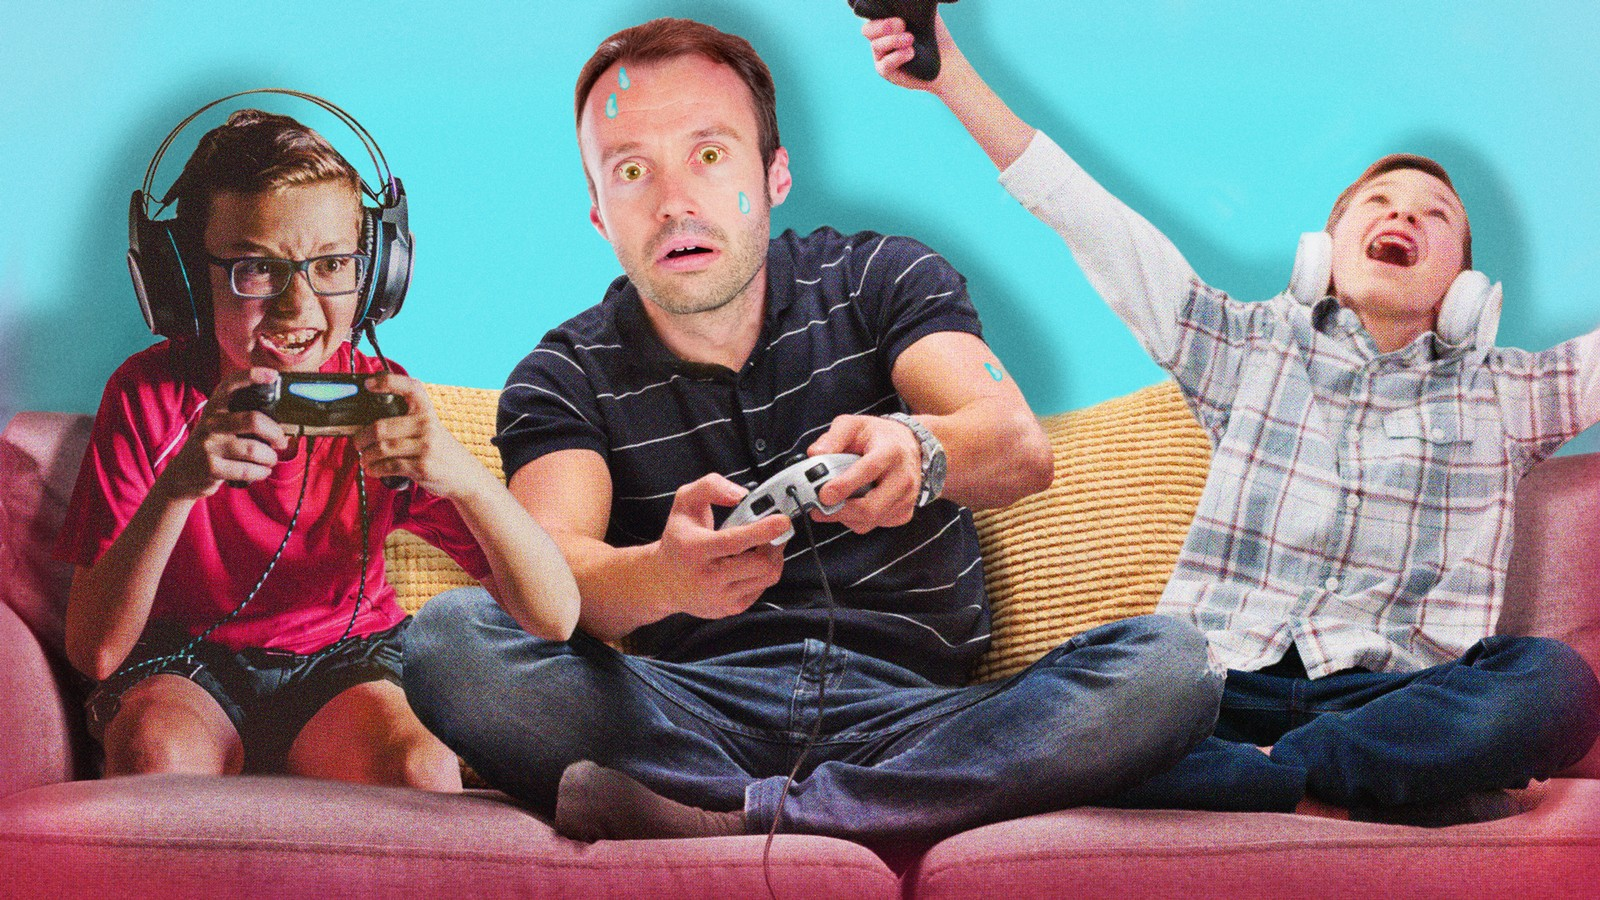 Can You Get Too Old to Be Good at Video Games?